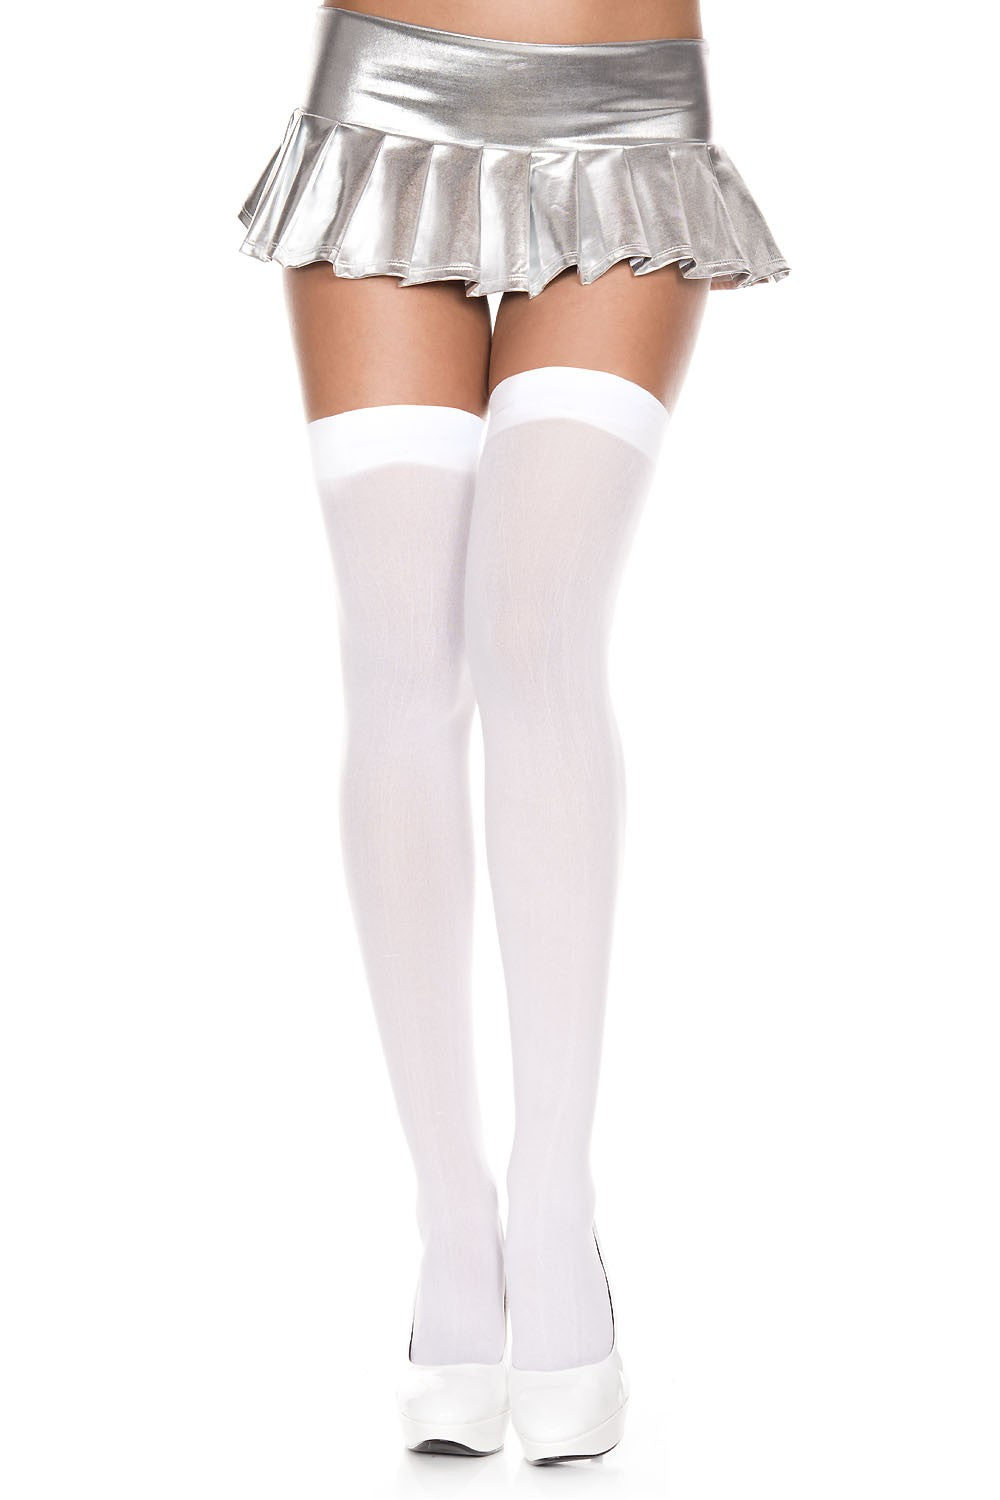 e983f9ba37df18 Women's Solid Opaque Thigh High Stockings, White | Joy Of Socks